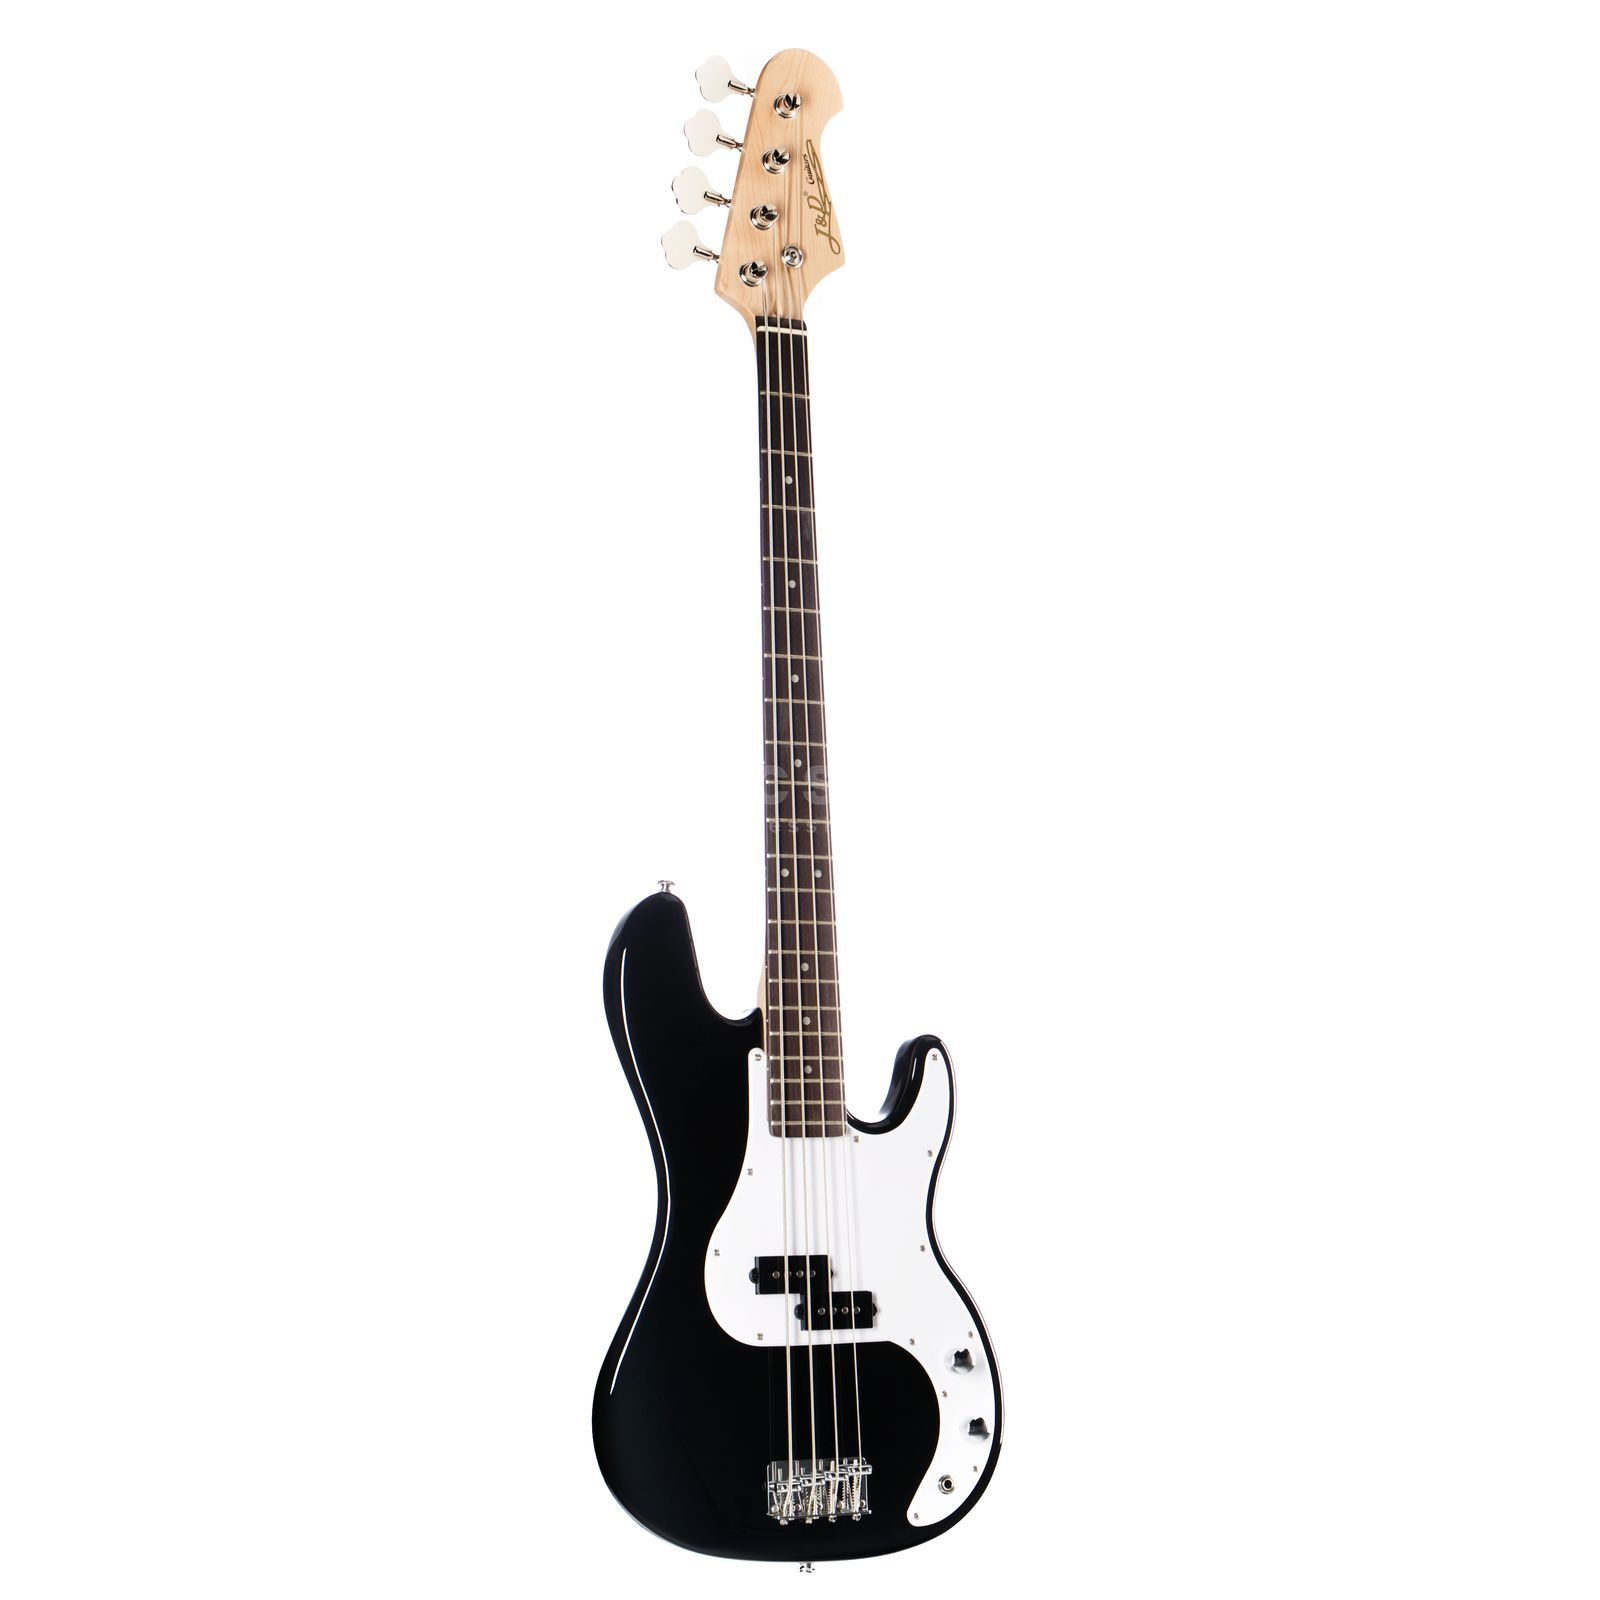 Jack & Danny Bass guitar YC-PB BK 4-String Black Highgloss Produktbillede